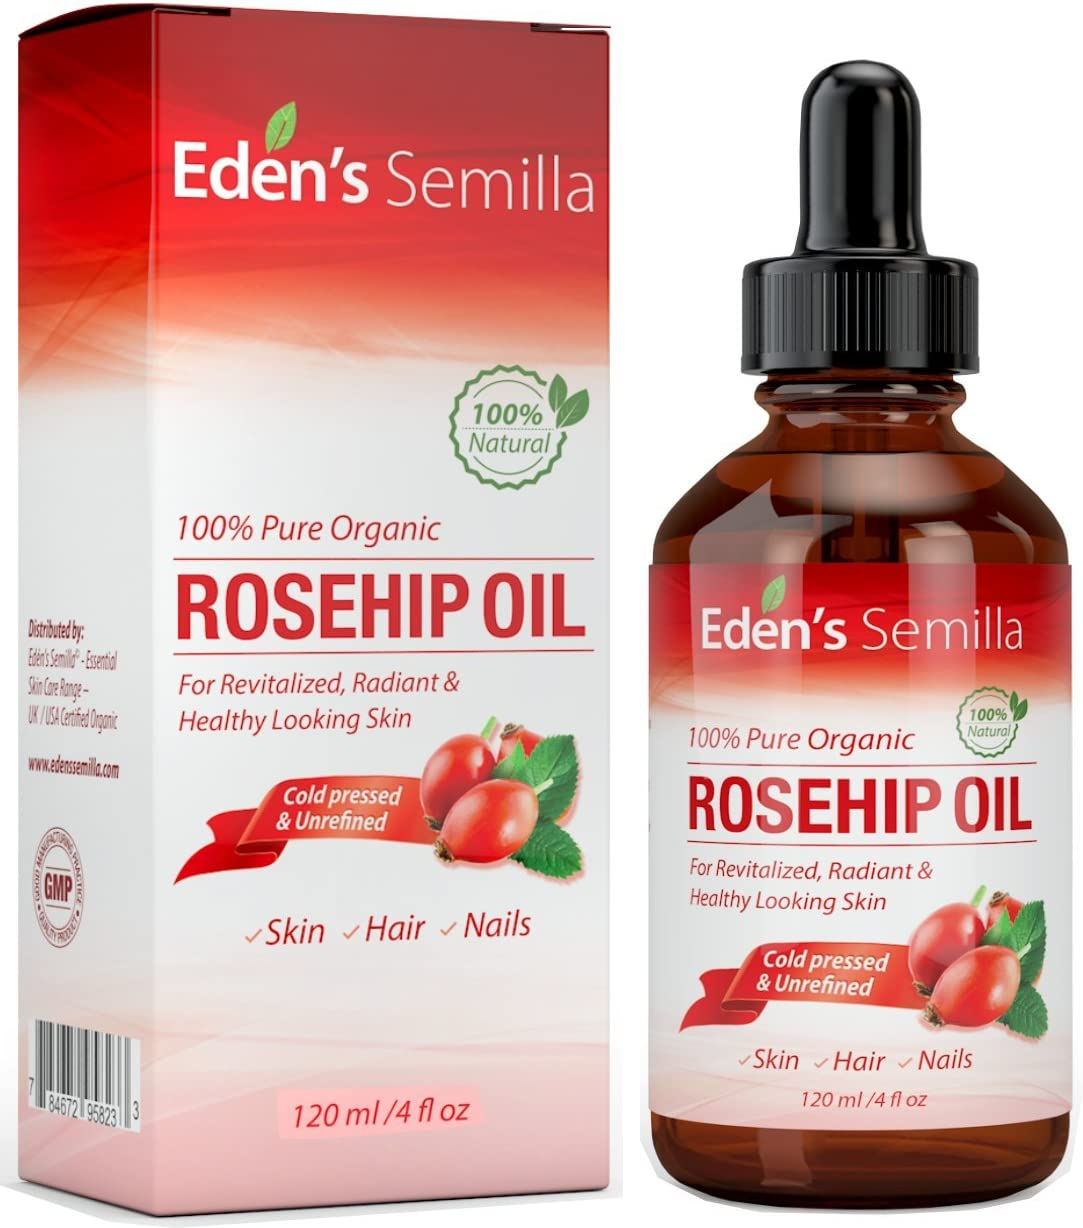 100% Pure Rosehip Oil - 4 OZ - Certified ORGANIC - Cold pressed & unrefined - NON Greasy HIGH absorbency - Use daily - Anti ageing, nourishes, hydrates and visibly reduces fine lines, scars, stretch marks and skin pigmentations - Suitable for all skin types - Eden's Semilla Essential Skin Care